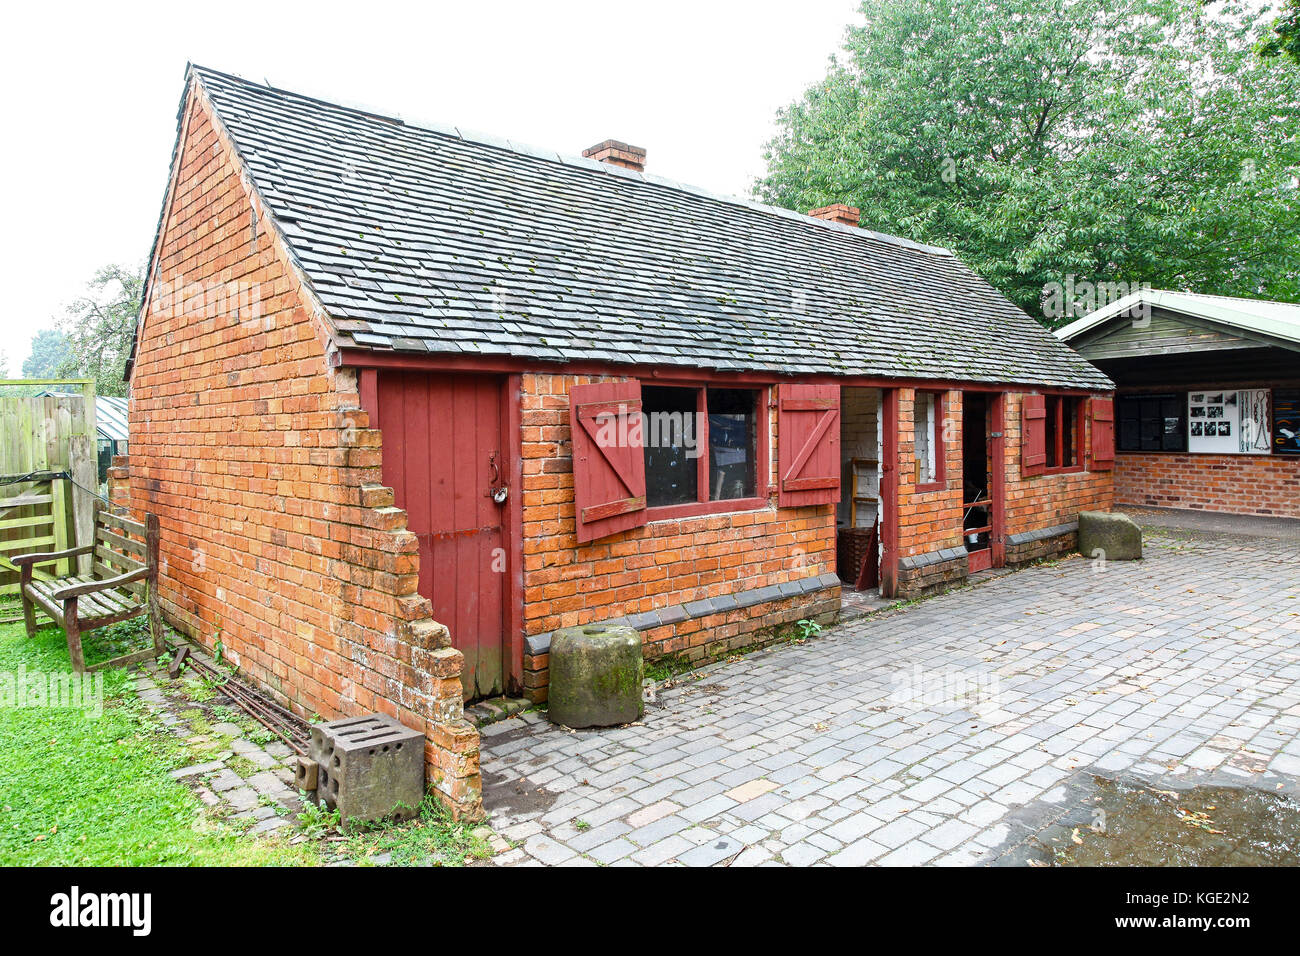 FORGE, NAIL SHOP and BREW HOUSE at the Avoncroft Museum of Buildings, Stoke Heath, Bromsgrove, Worcestershire, England, - Stock Image